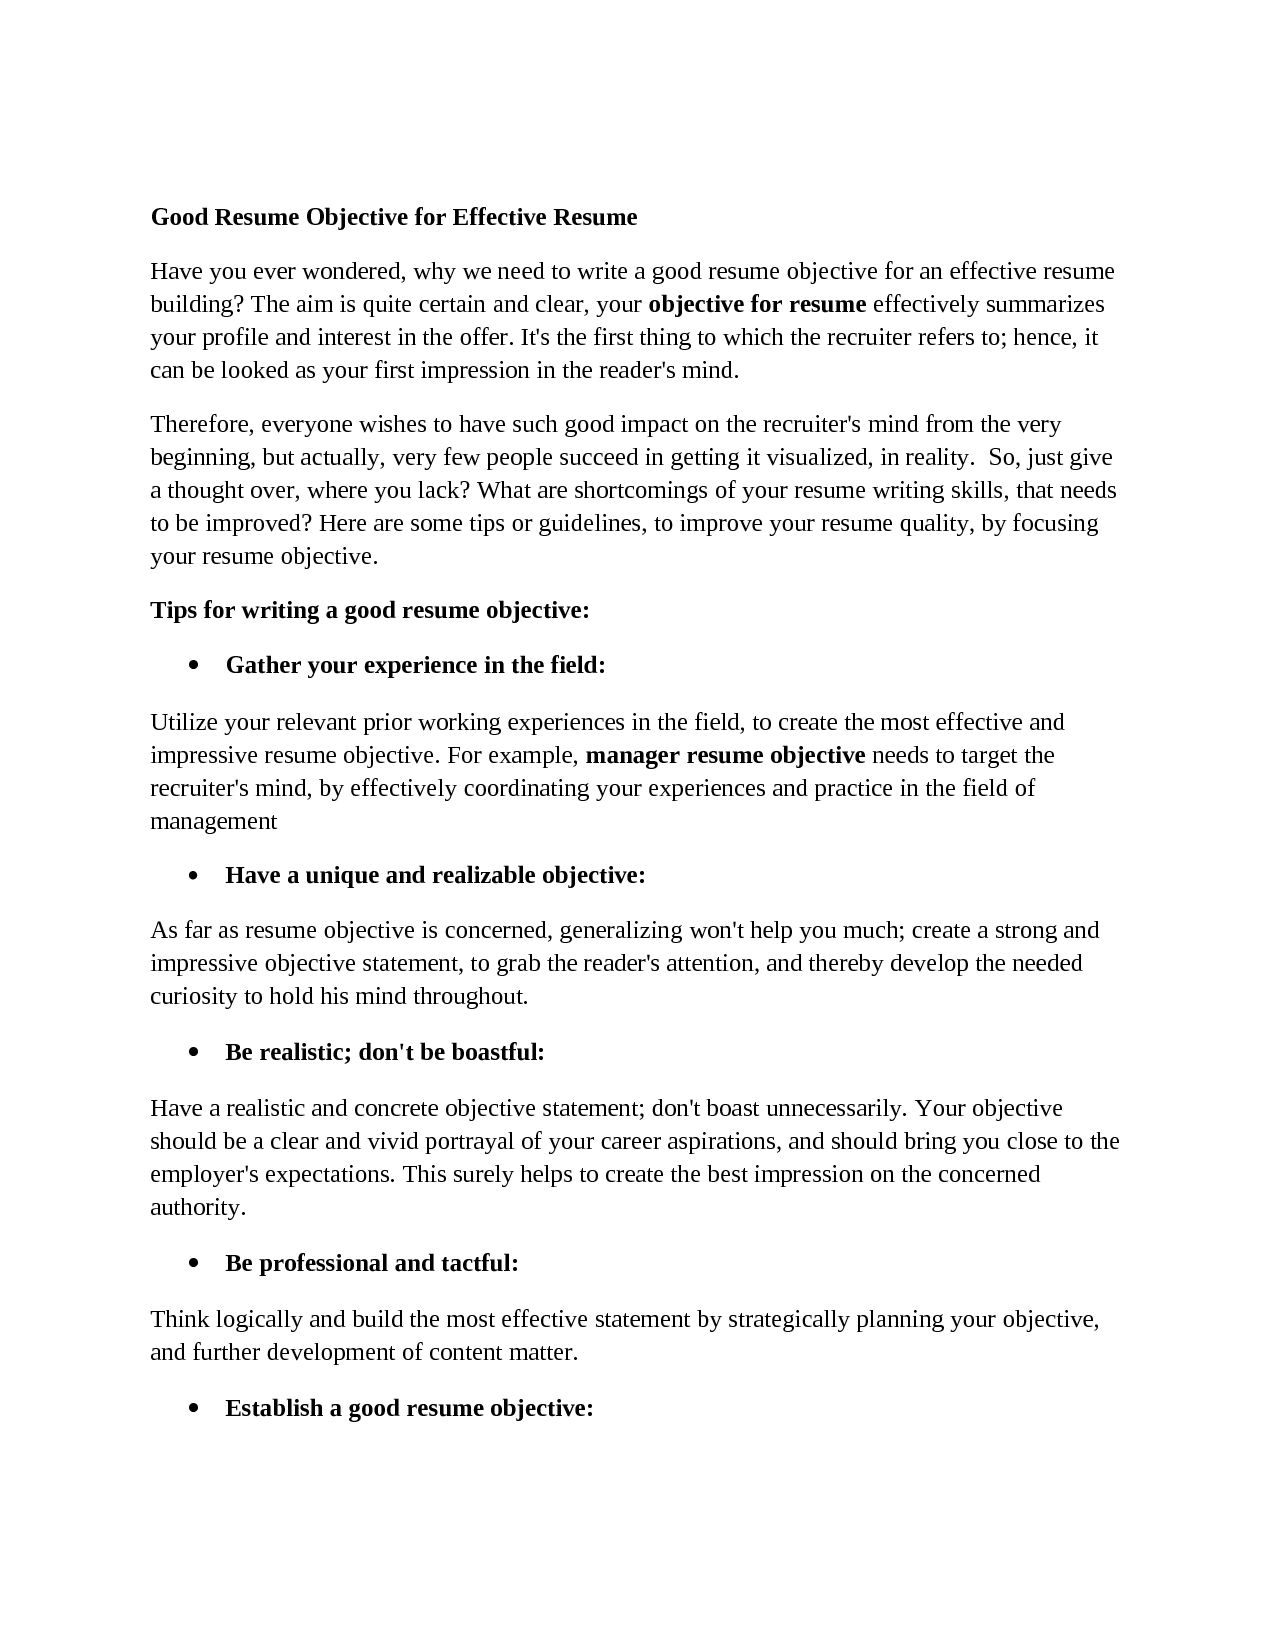 Strong Resume Objective Dissertation Writing A Research Journeyguidelines For Writing